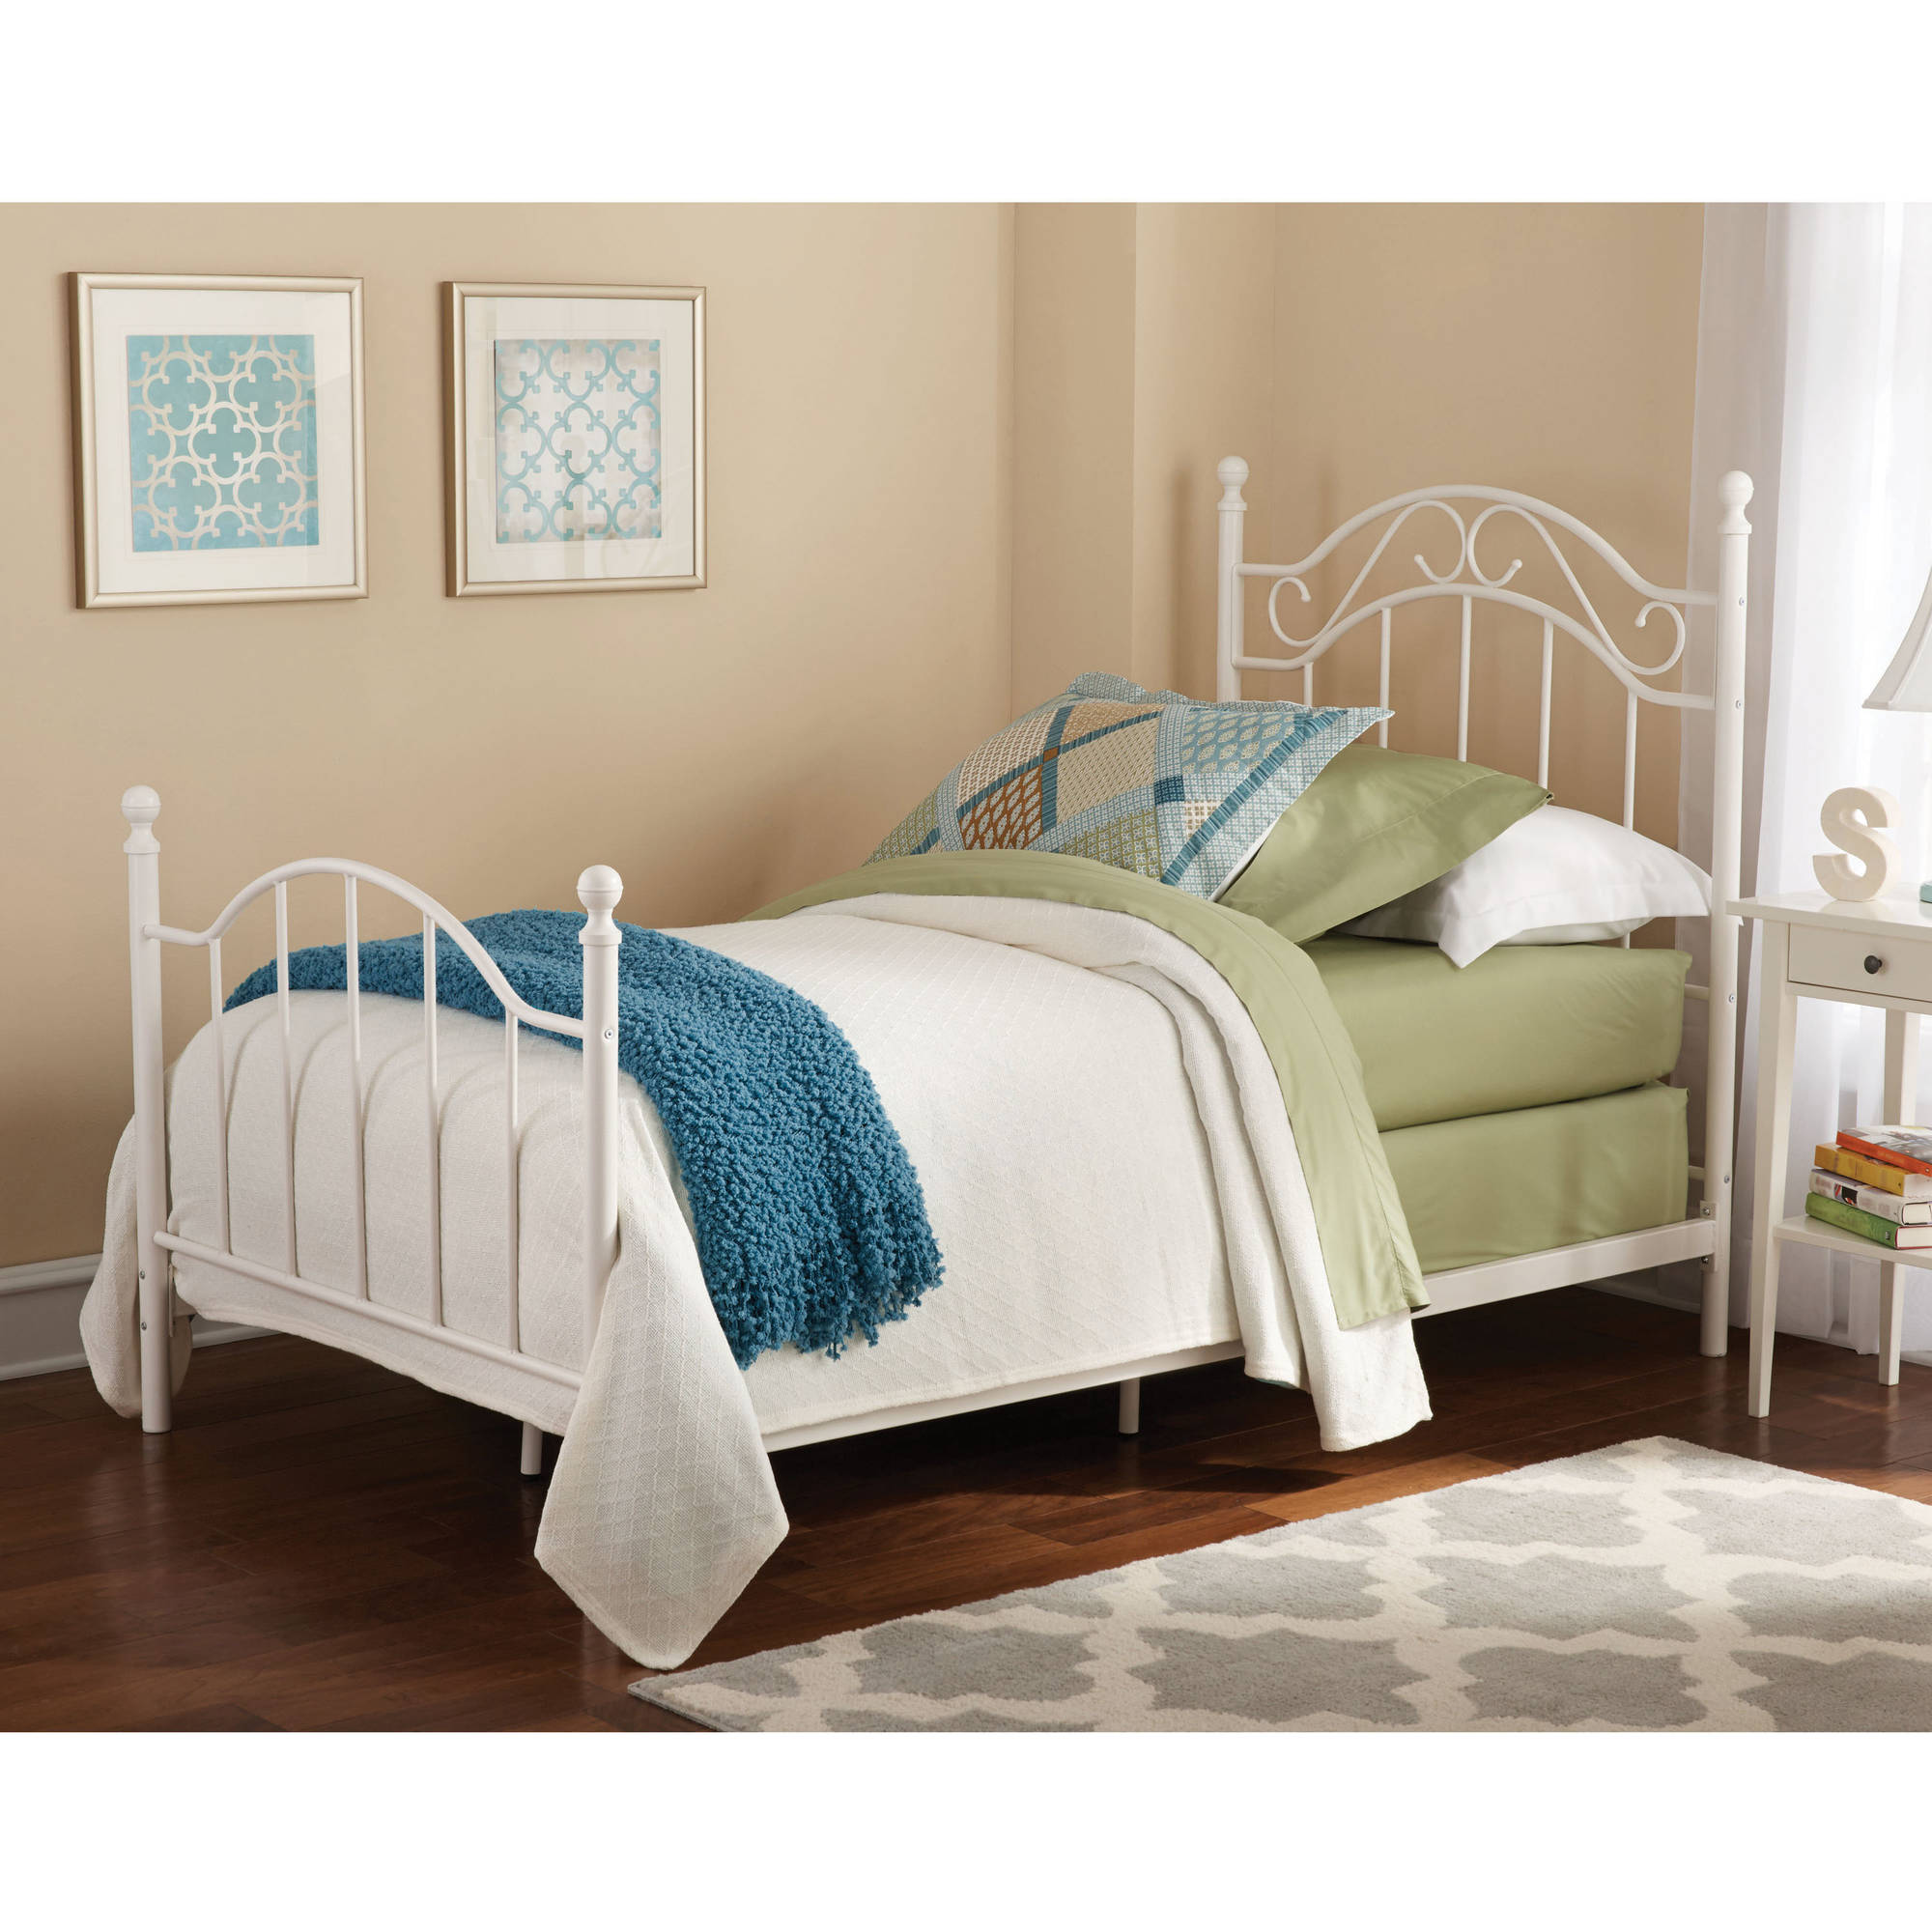 Mainstays Twin Metal Bed, Multiple Colors